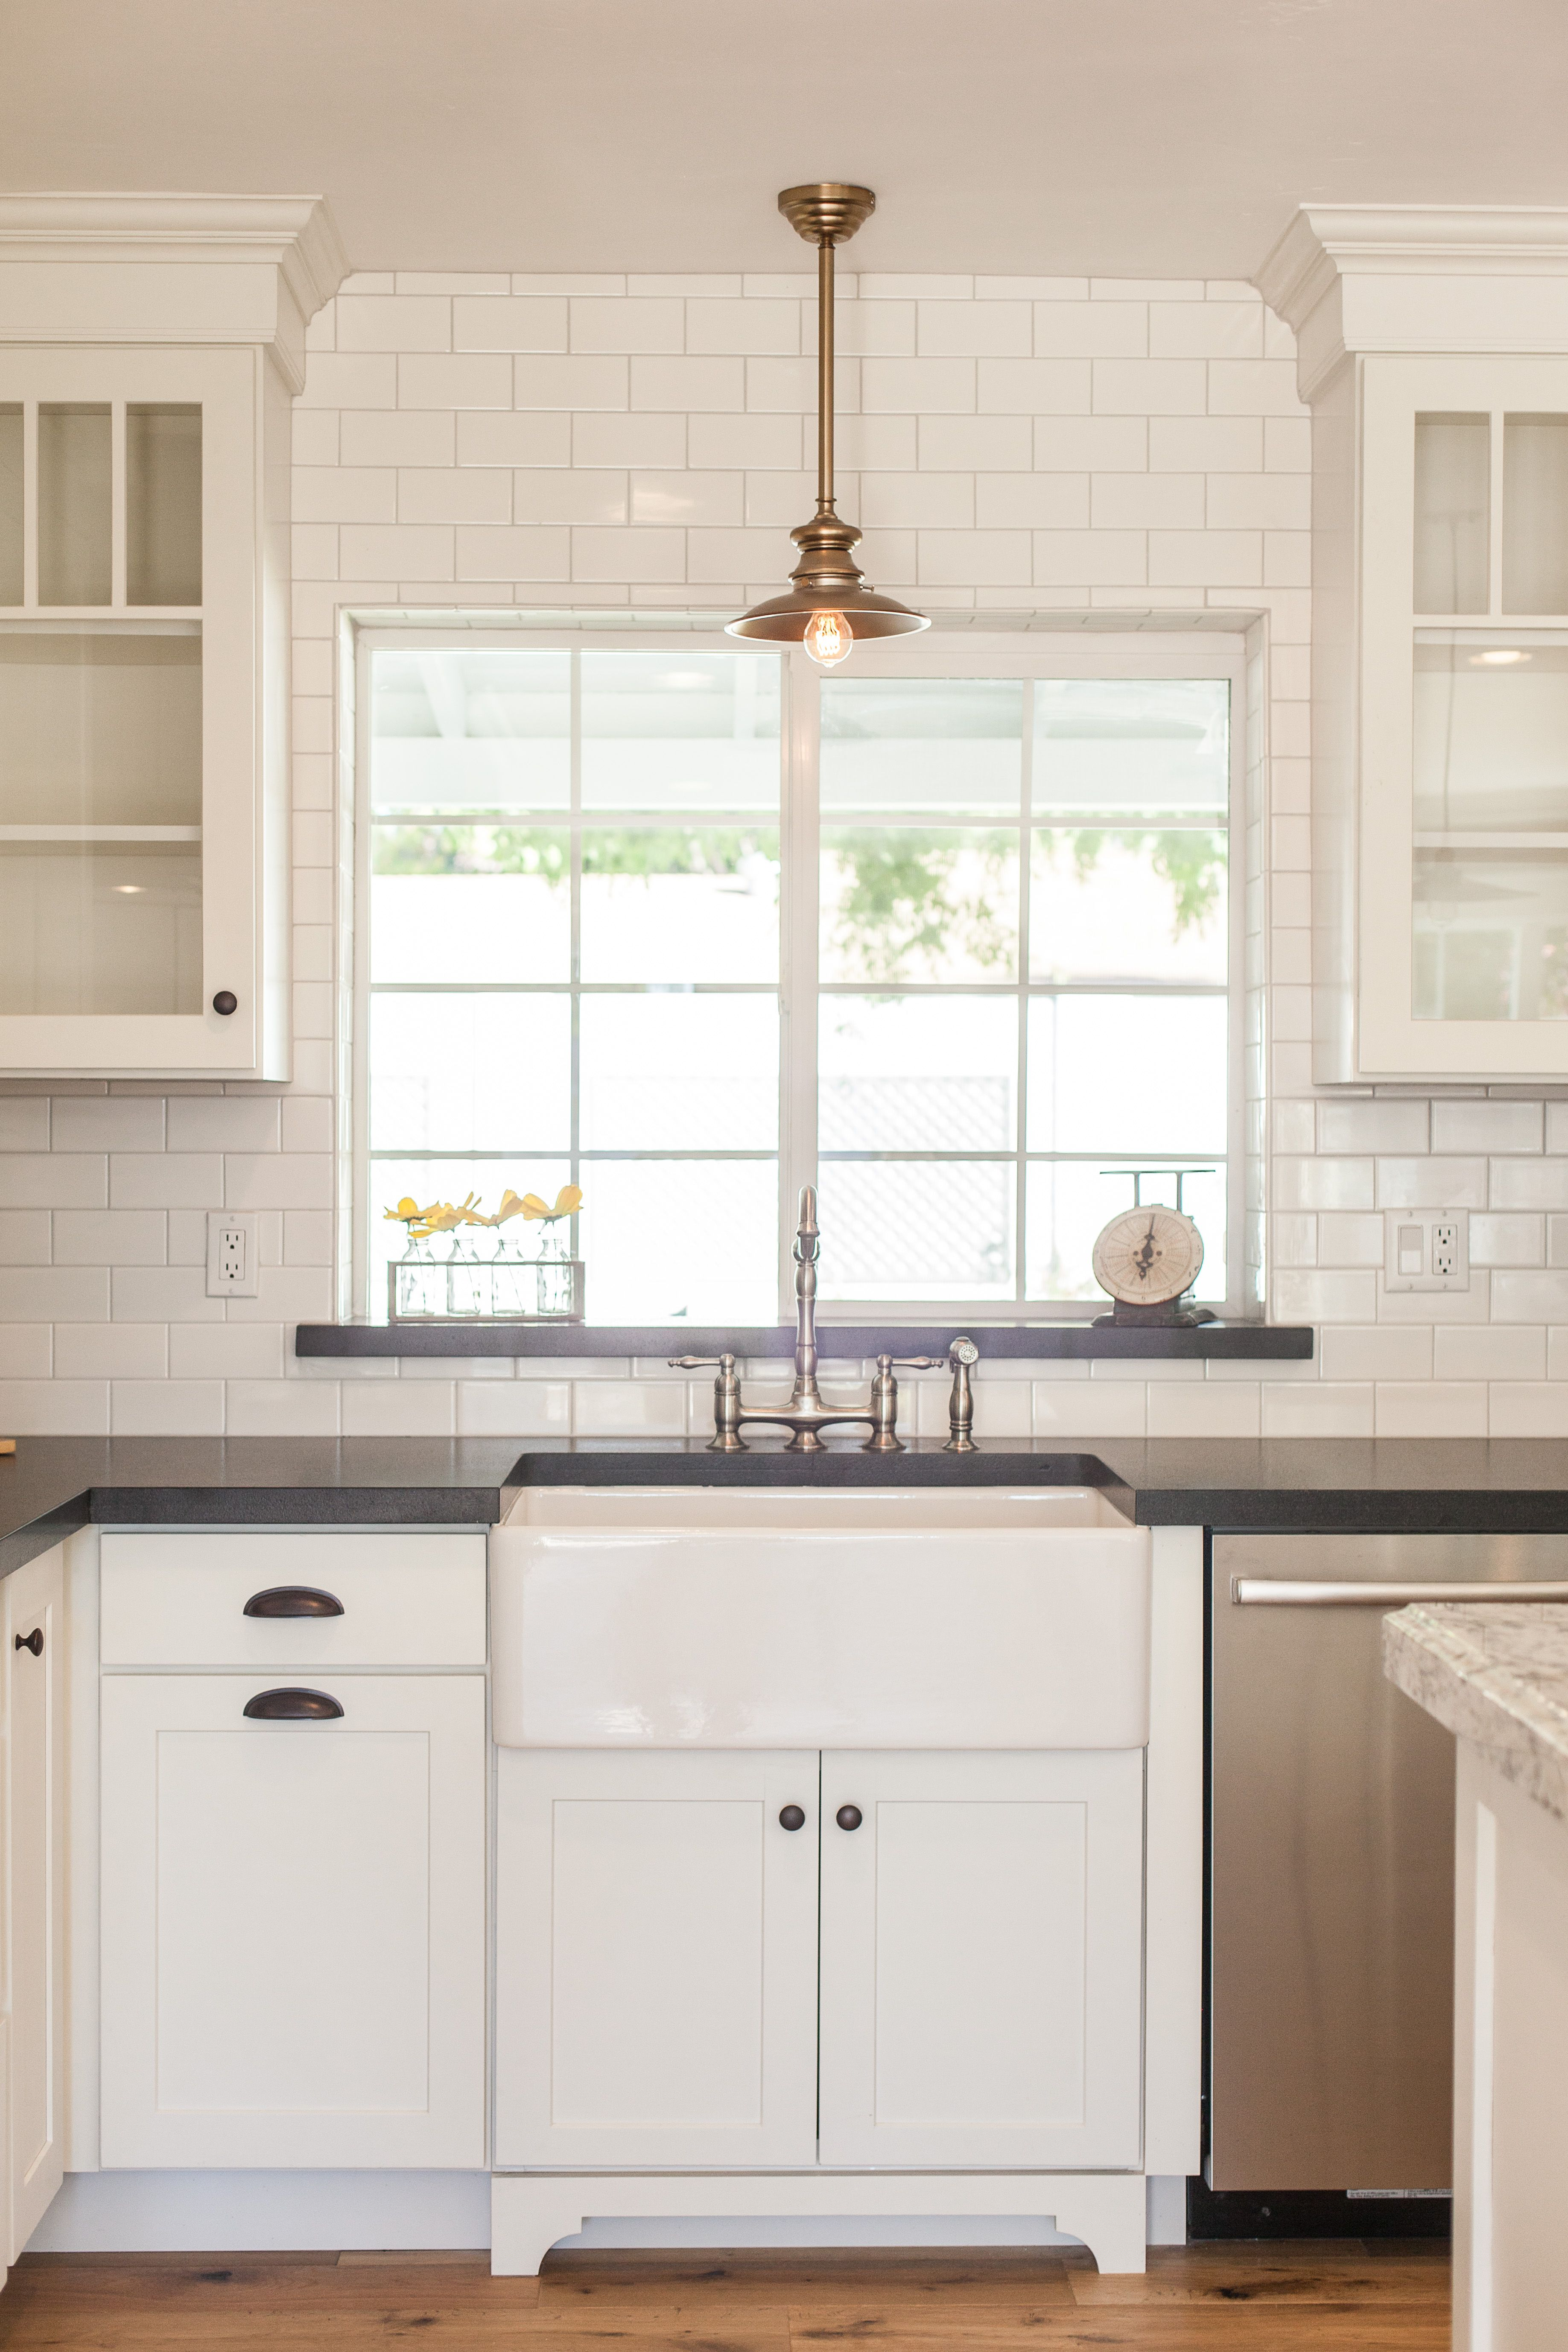 Farmhouse Sink Subway Tile Around Window / Pendant Light